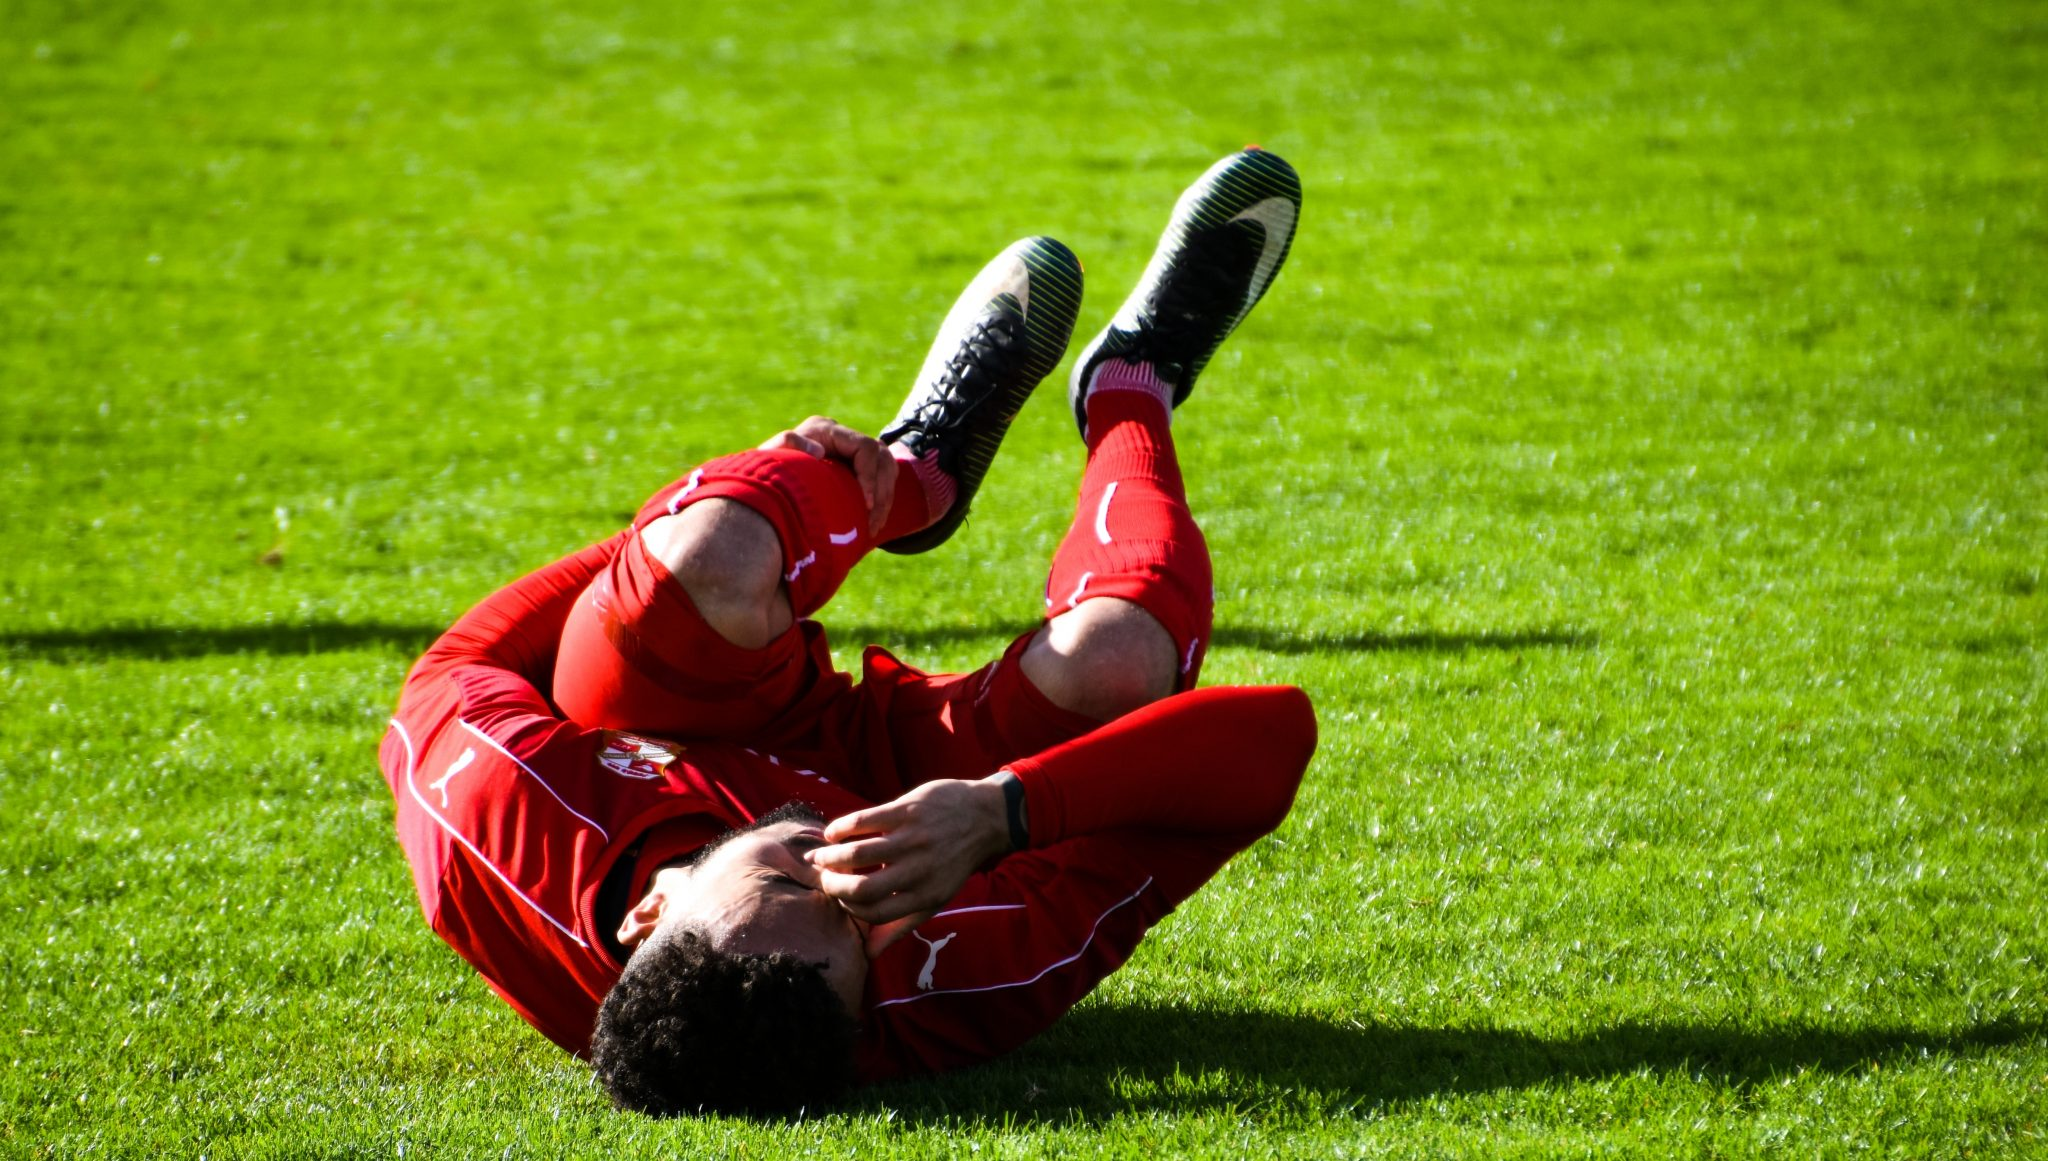 Good Tips for Injury Prevention in Young Athletes